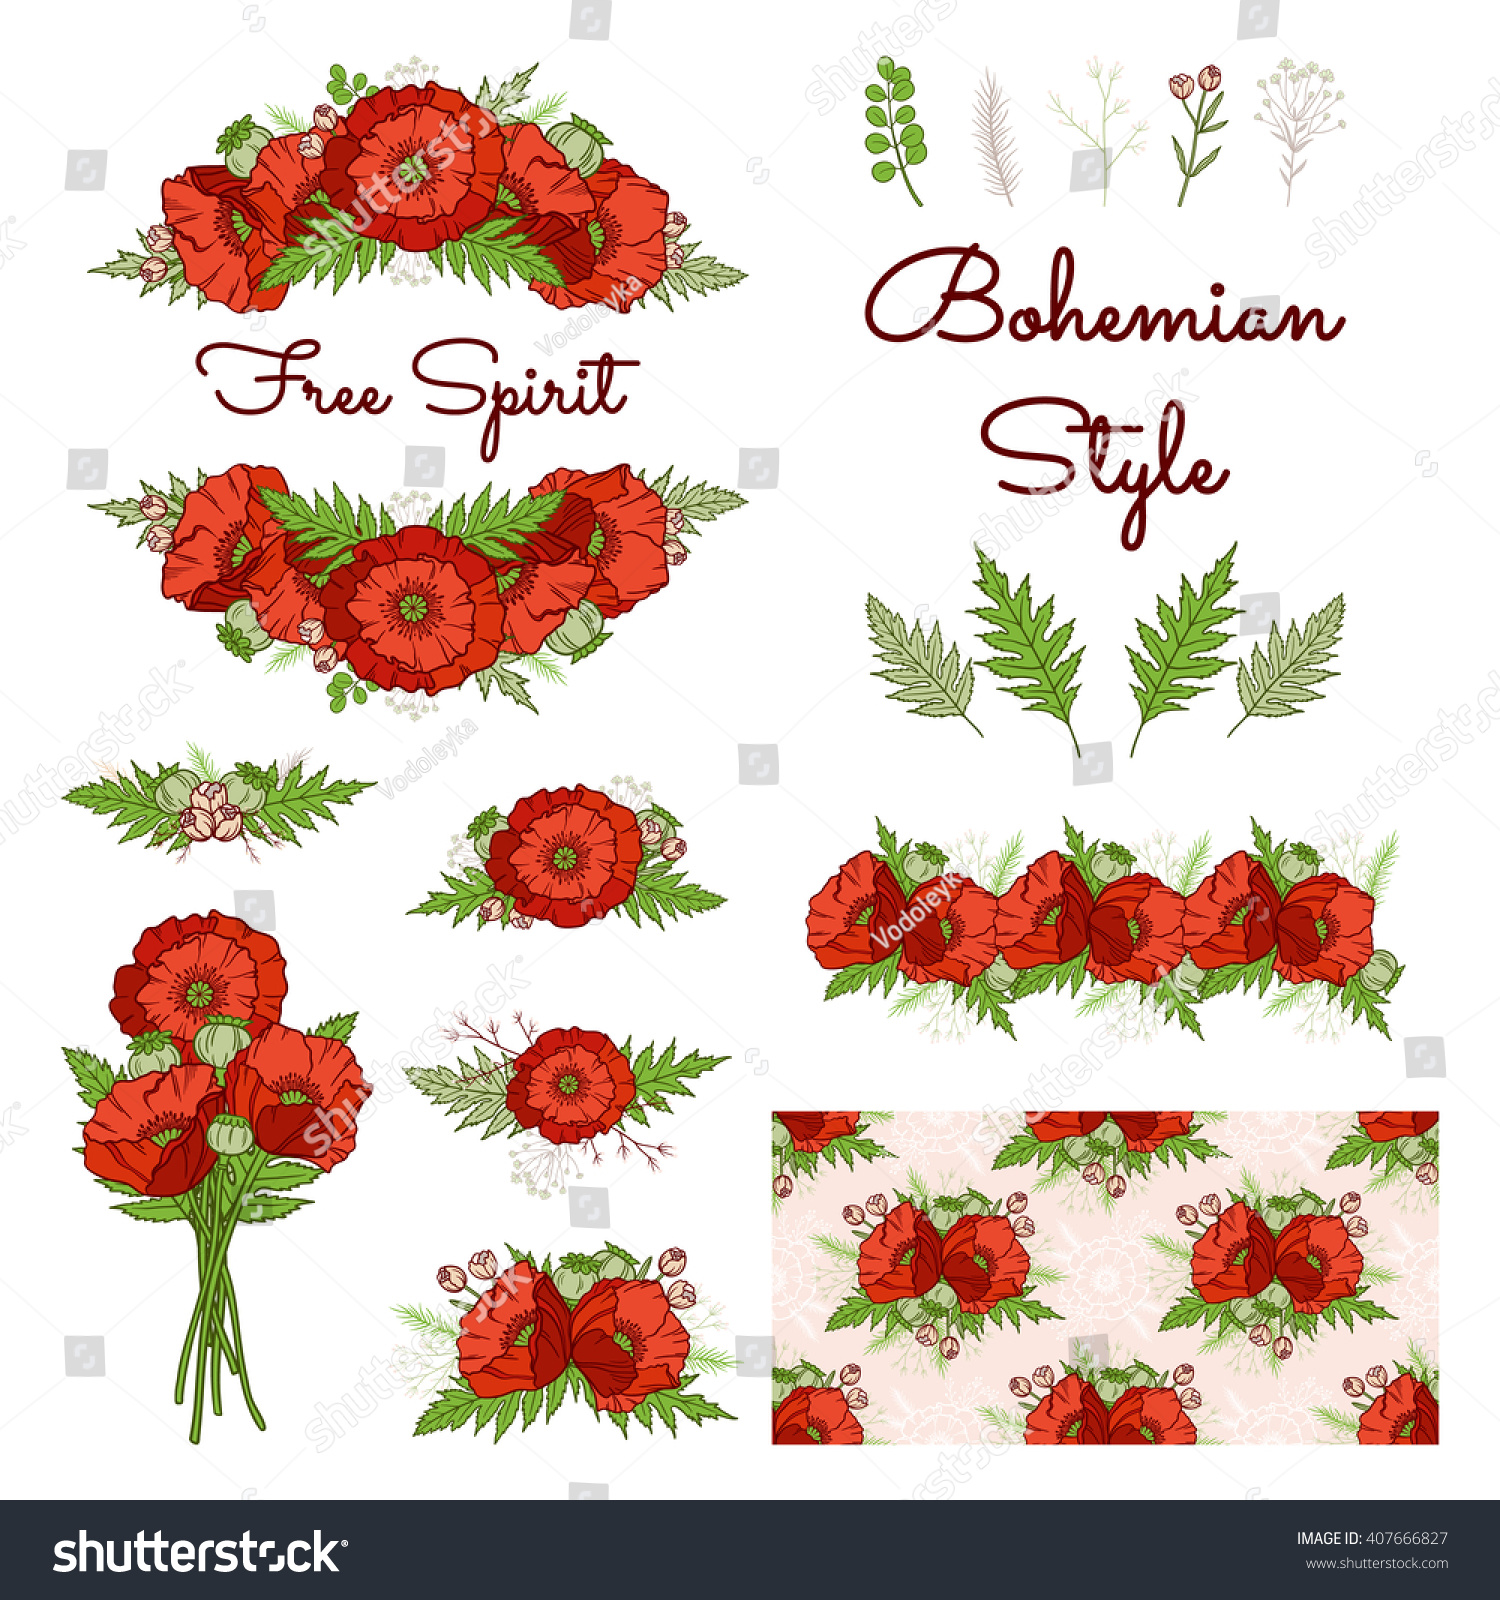 Bohemian Style Collection Set Boho Floral Stock Vector (Royalty Free ...